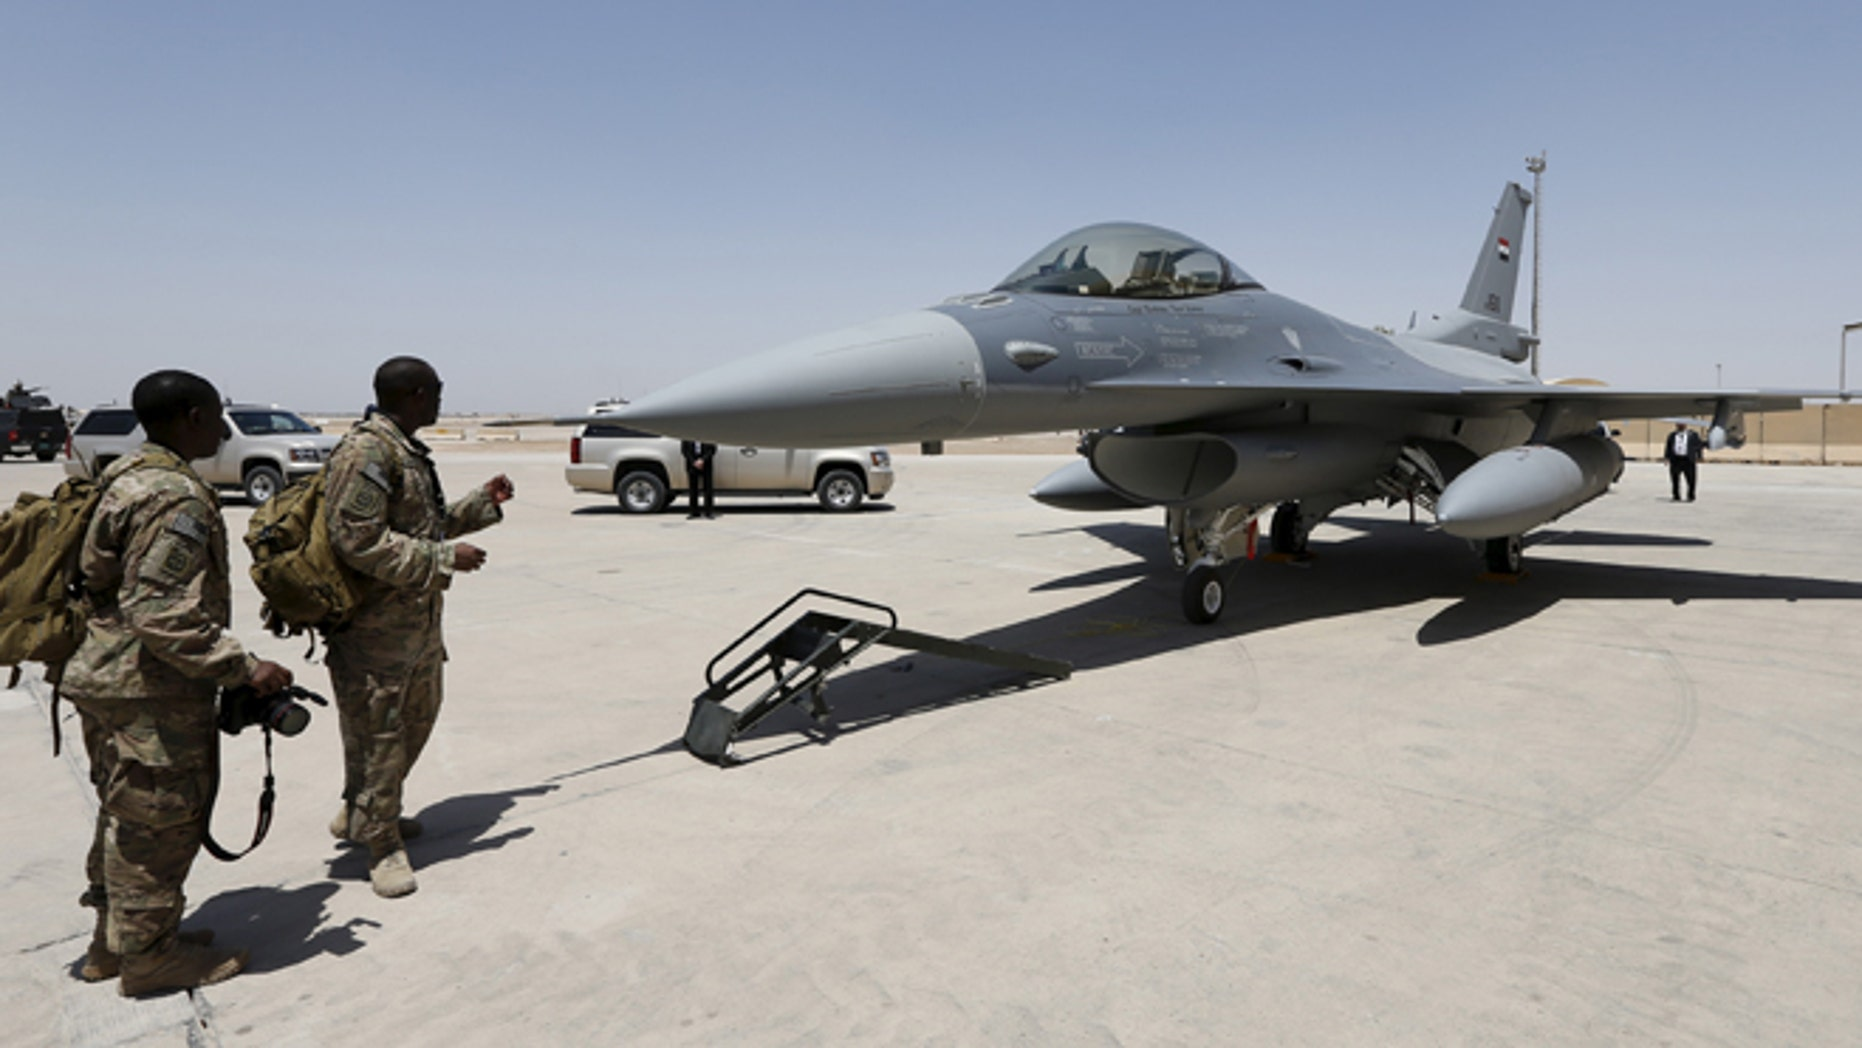 July 20, 2015: U.S. Army soldiers look at a F-16 fighter jet during an official ceremony to receive four of these aircrafts from the U.S., at a military base in Balad, Iraq. (Reuters)